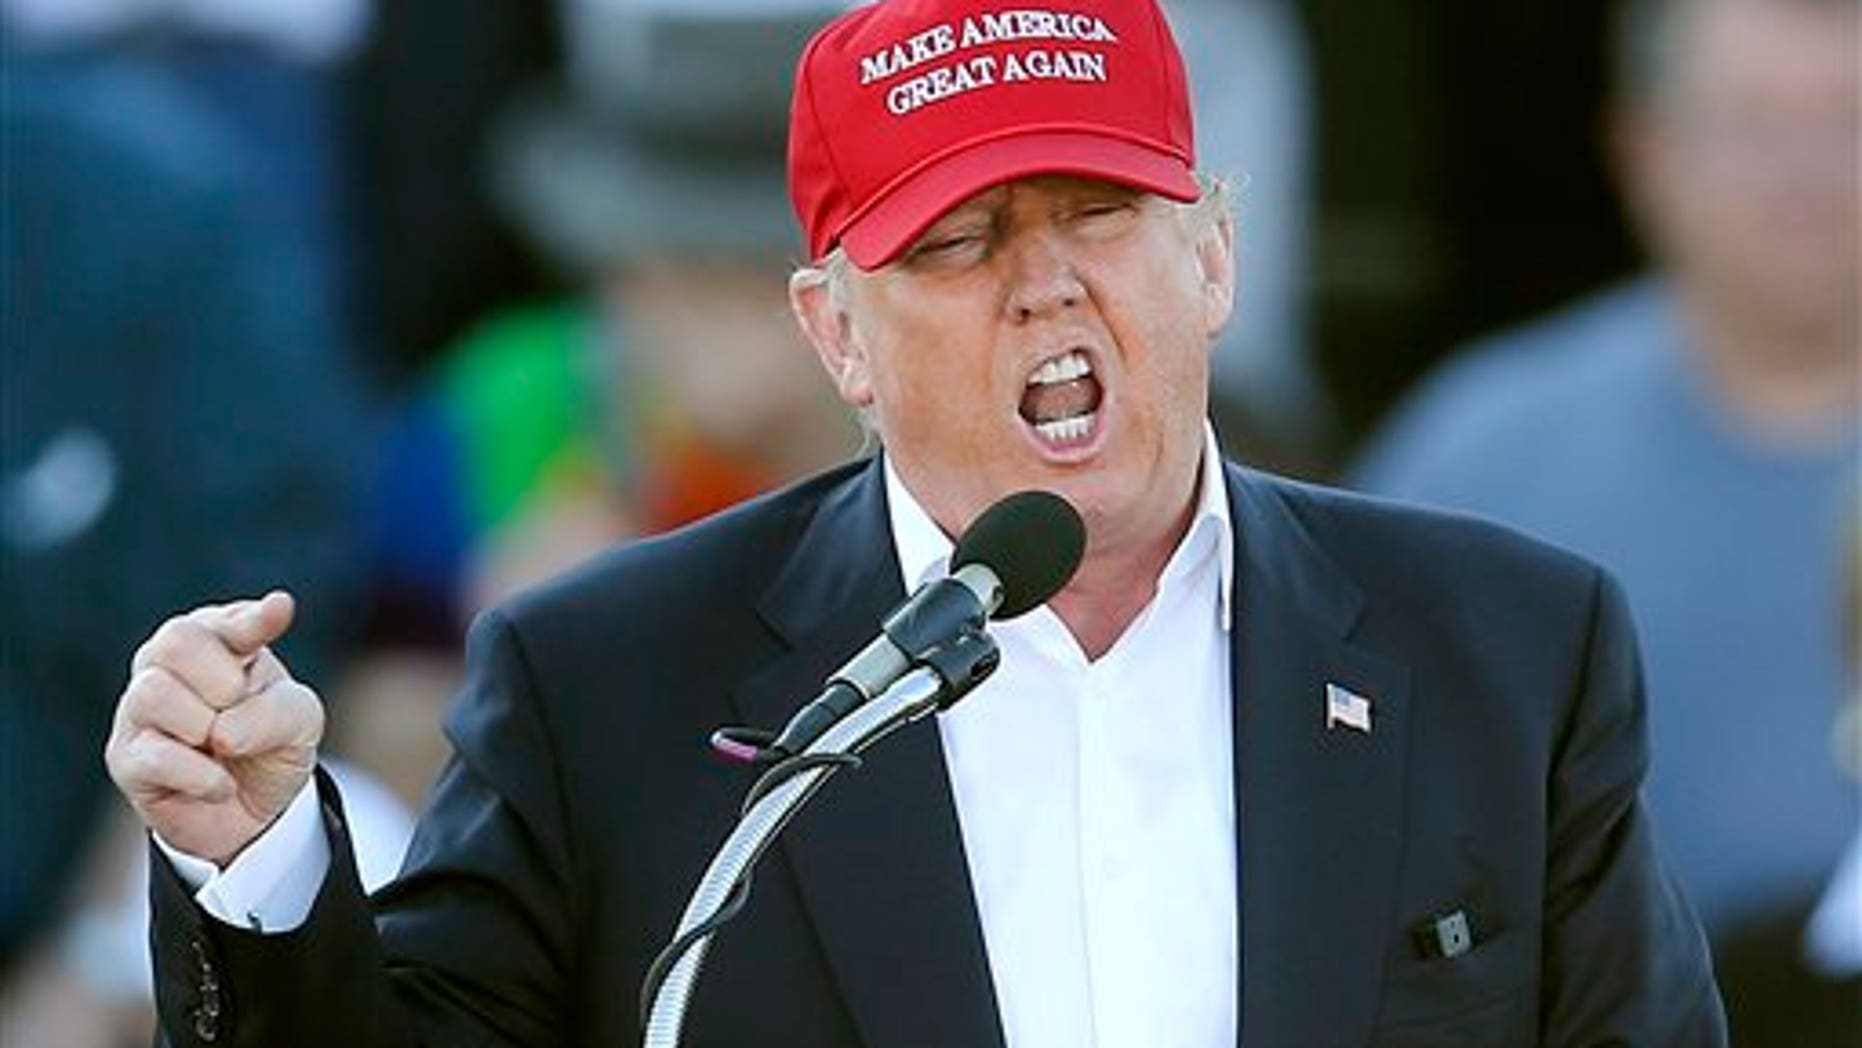 """FILE - In this Feb. 28, 2016, file photo, Republican presidential candidate Donald Trump speaks during a rally in Madison, Ala. Republican presidential front-runner Trump has staked out uncompromising positions on Asia policy that could potentially strain U.S. relations with the region if he wins the White House. He says China is ripping off America in trade and should be slapped with a fat import tax. And he claims U.S. military allies Japan and South Korea are freeloading and need to pull their weight. The pan-Pacific trade pact negotiated by the Obama administration is a """"total disaster."""" (AP Photo/John Bazemore, File)"""